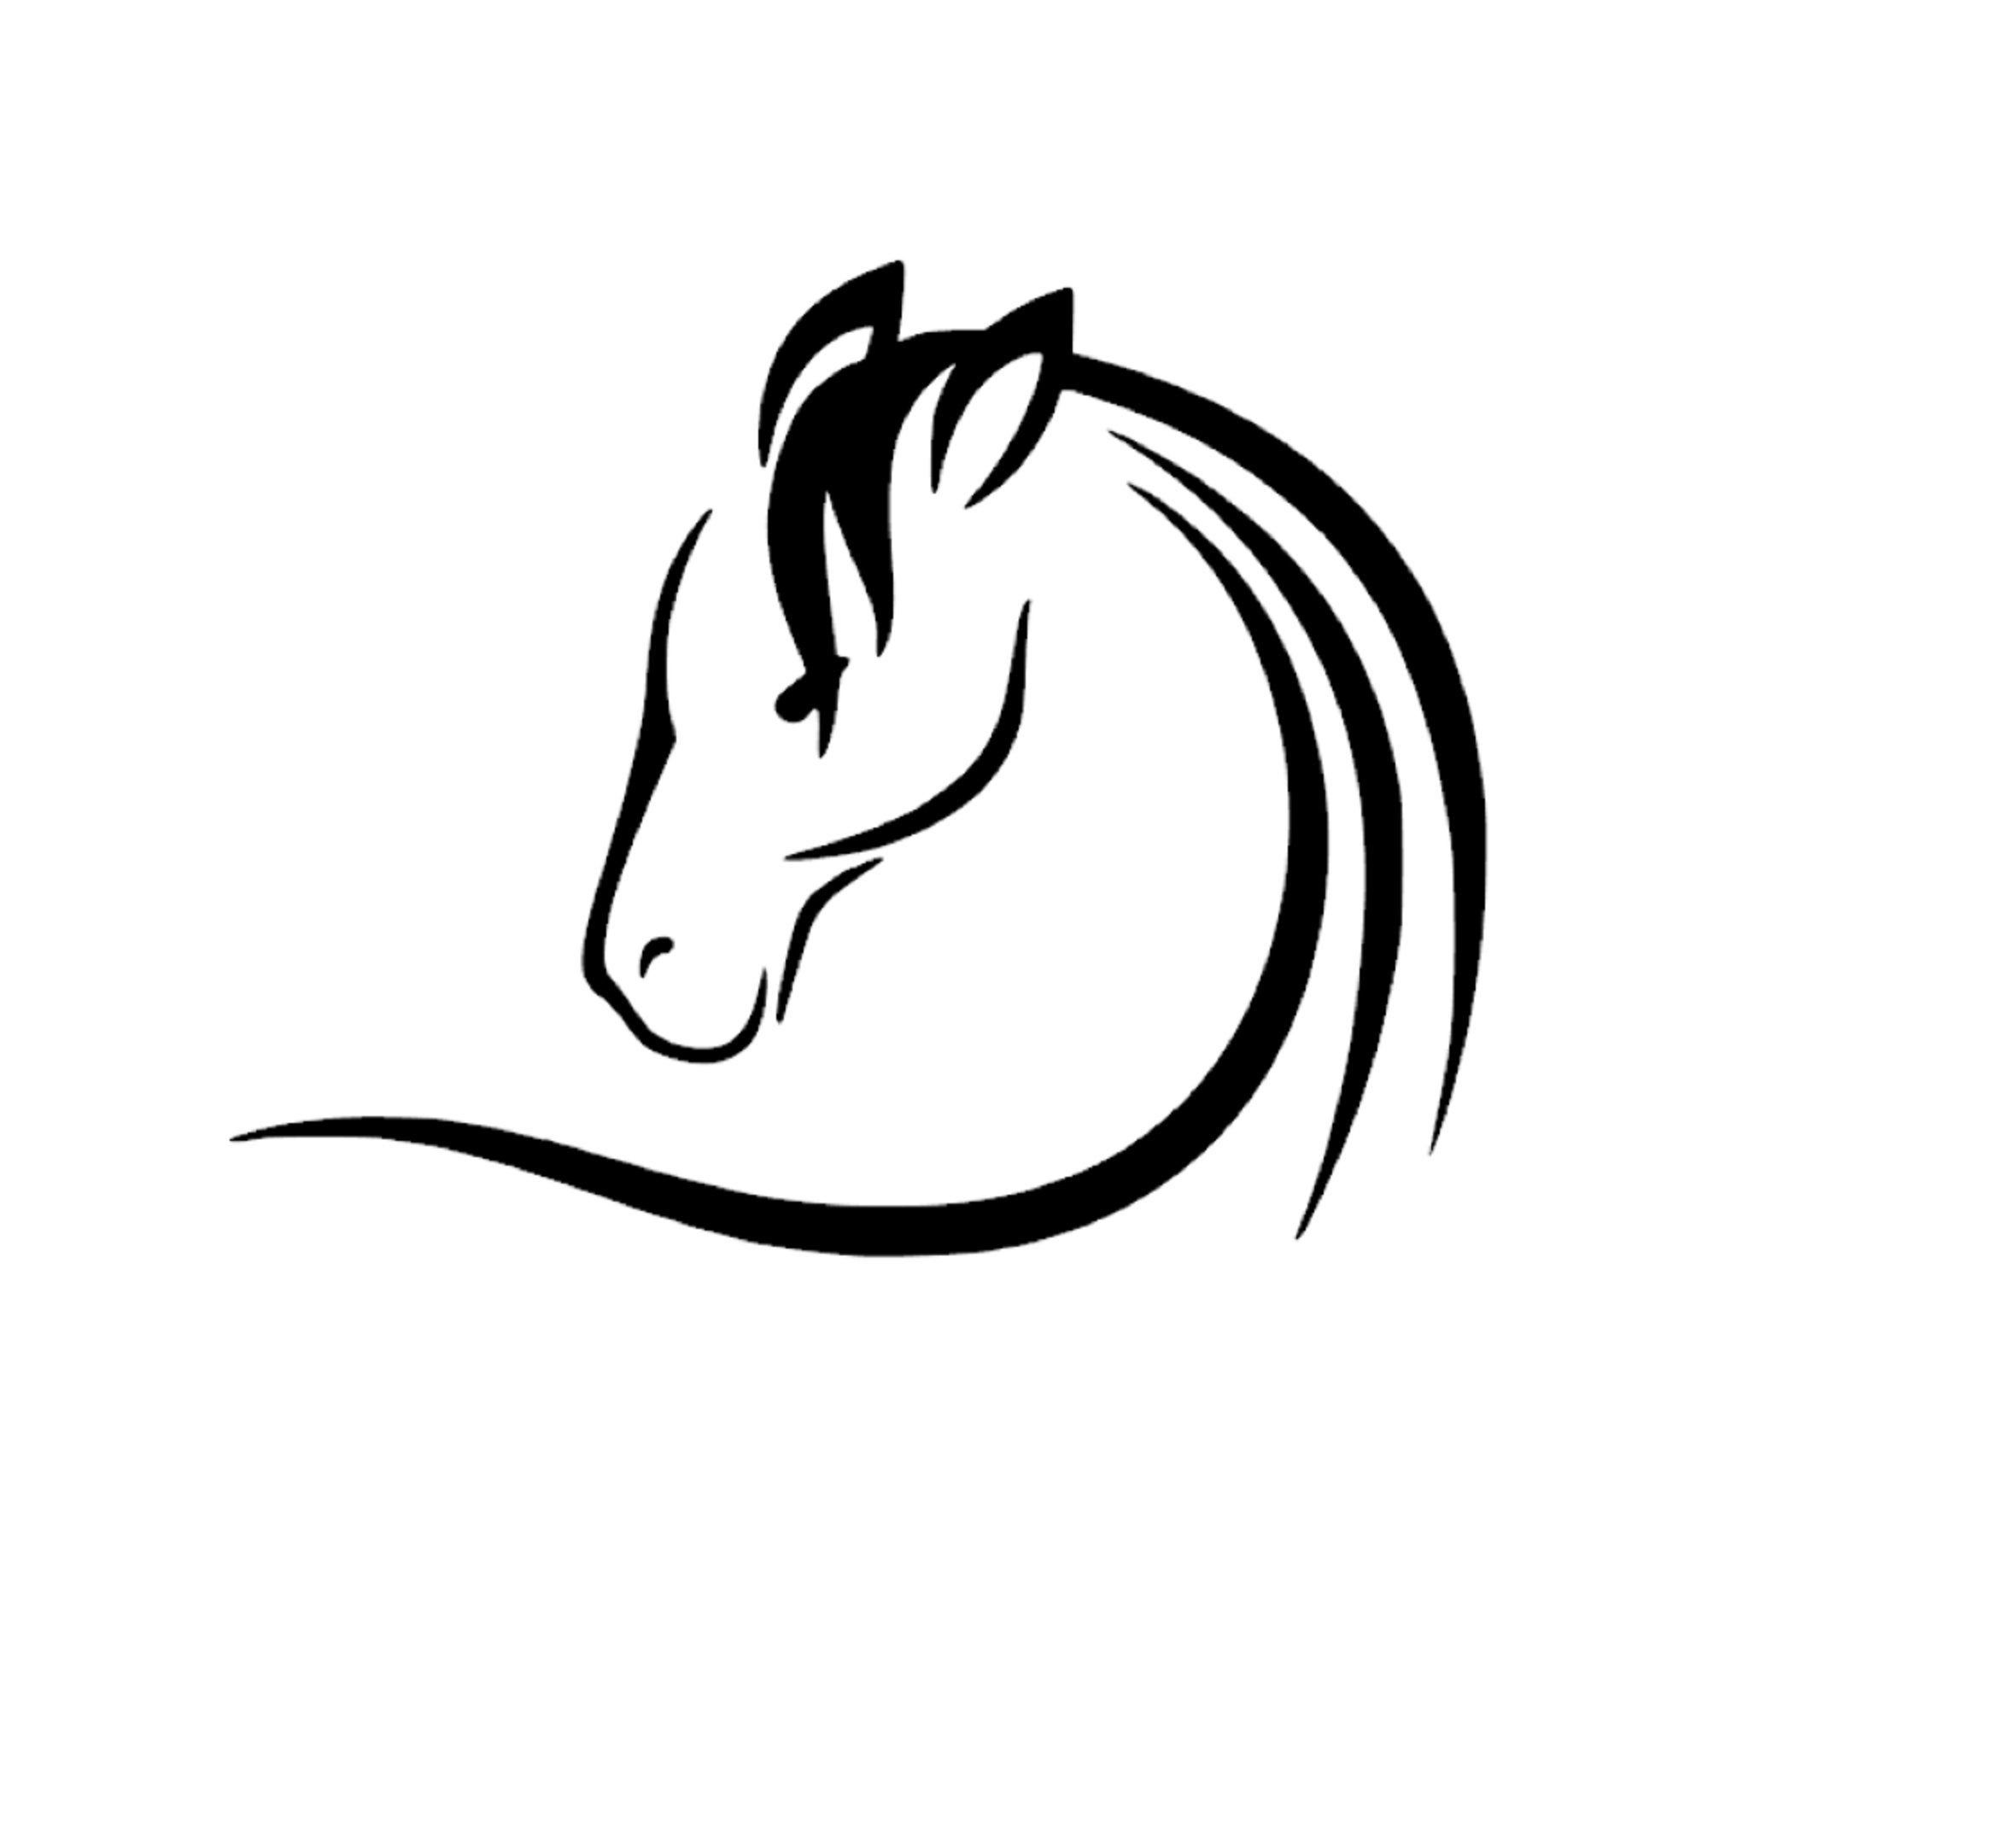 Horse Head Decal Sticker Horse Decal For Horse Float Ute Etsy Gifts For Horse Lovers Horse Head Horse Rescue [ 2164 x 2356 Pixel ]